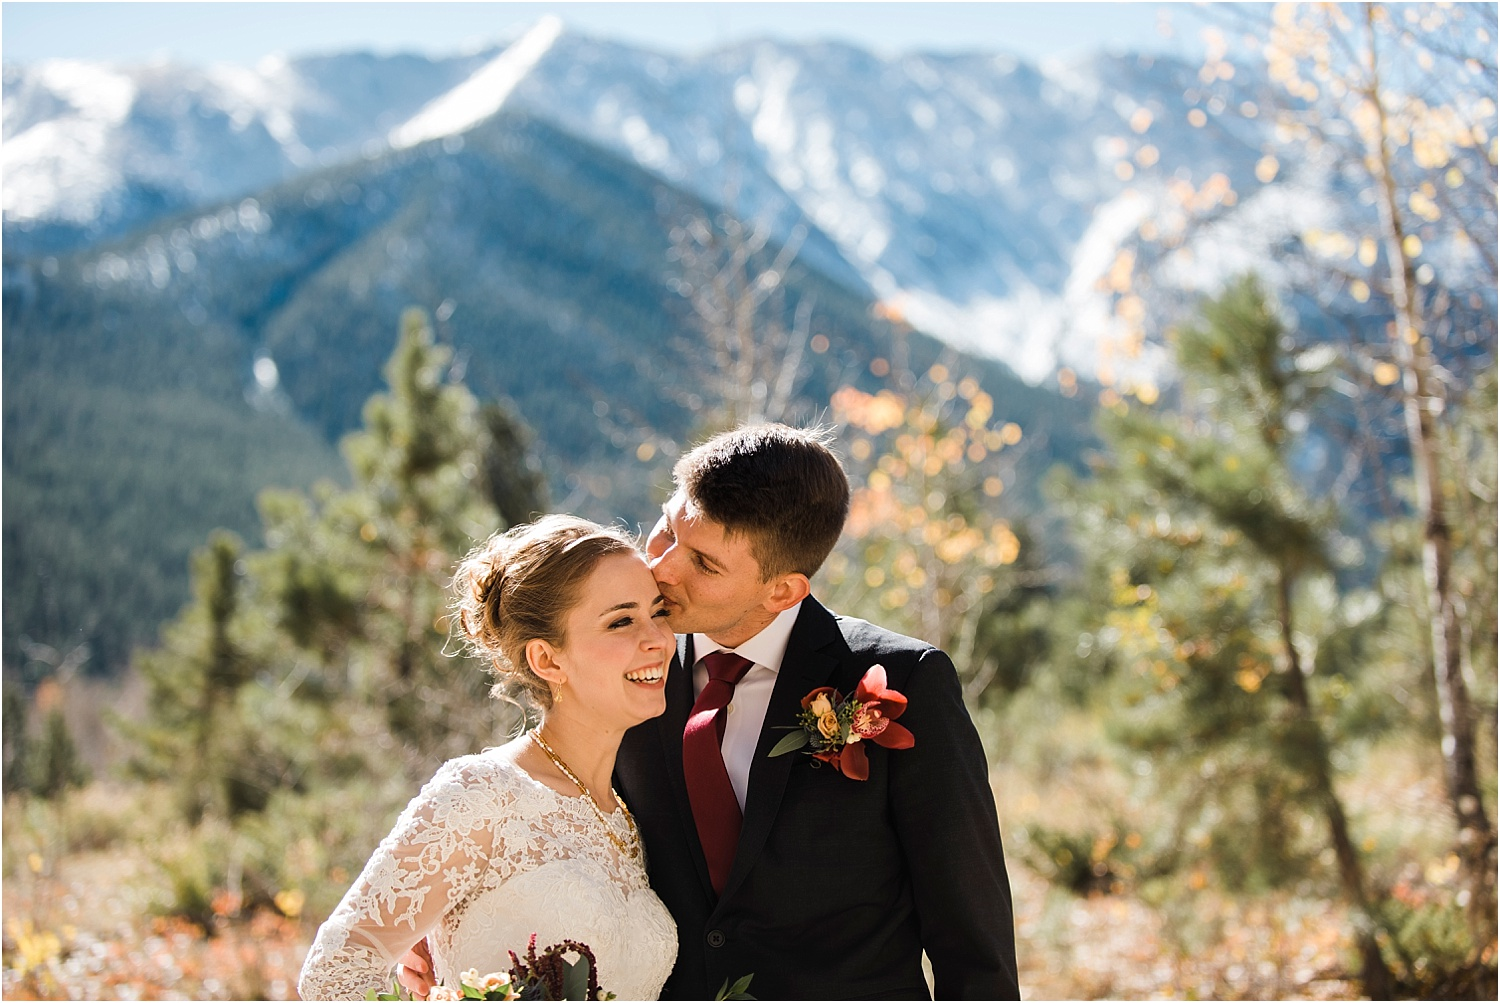 Buena_Vista_Destination_Wedding_Photographer_Apollo_Fields_Colorado_0003.jpg